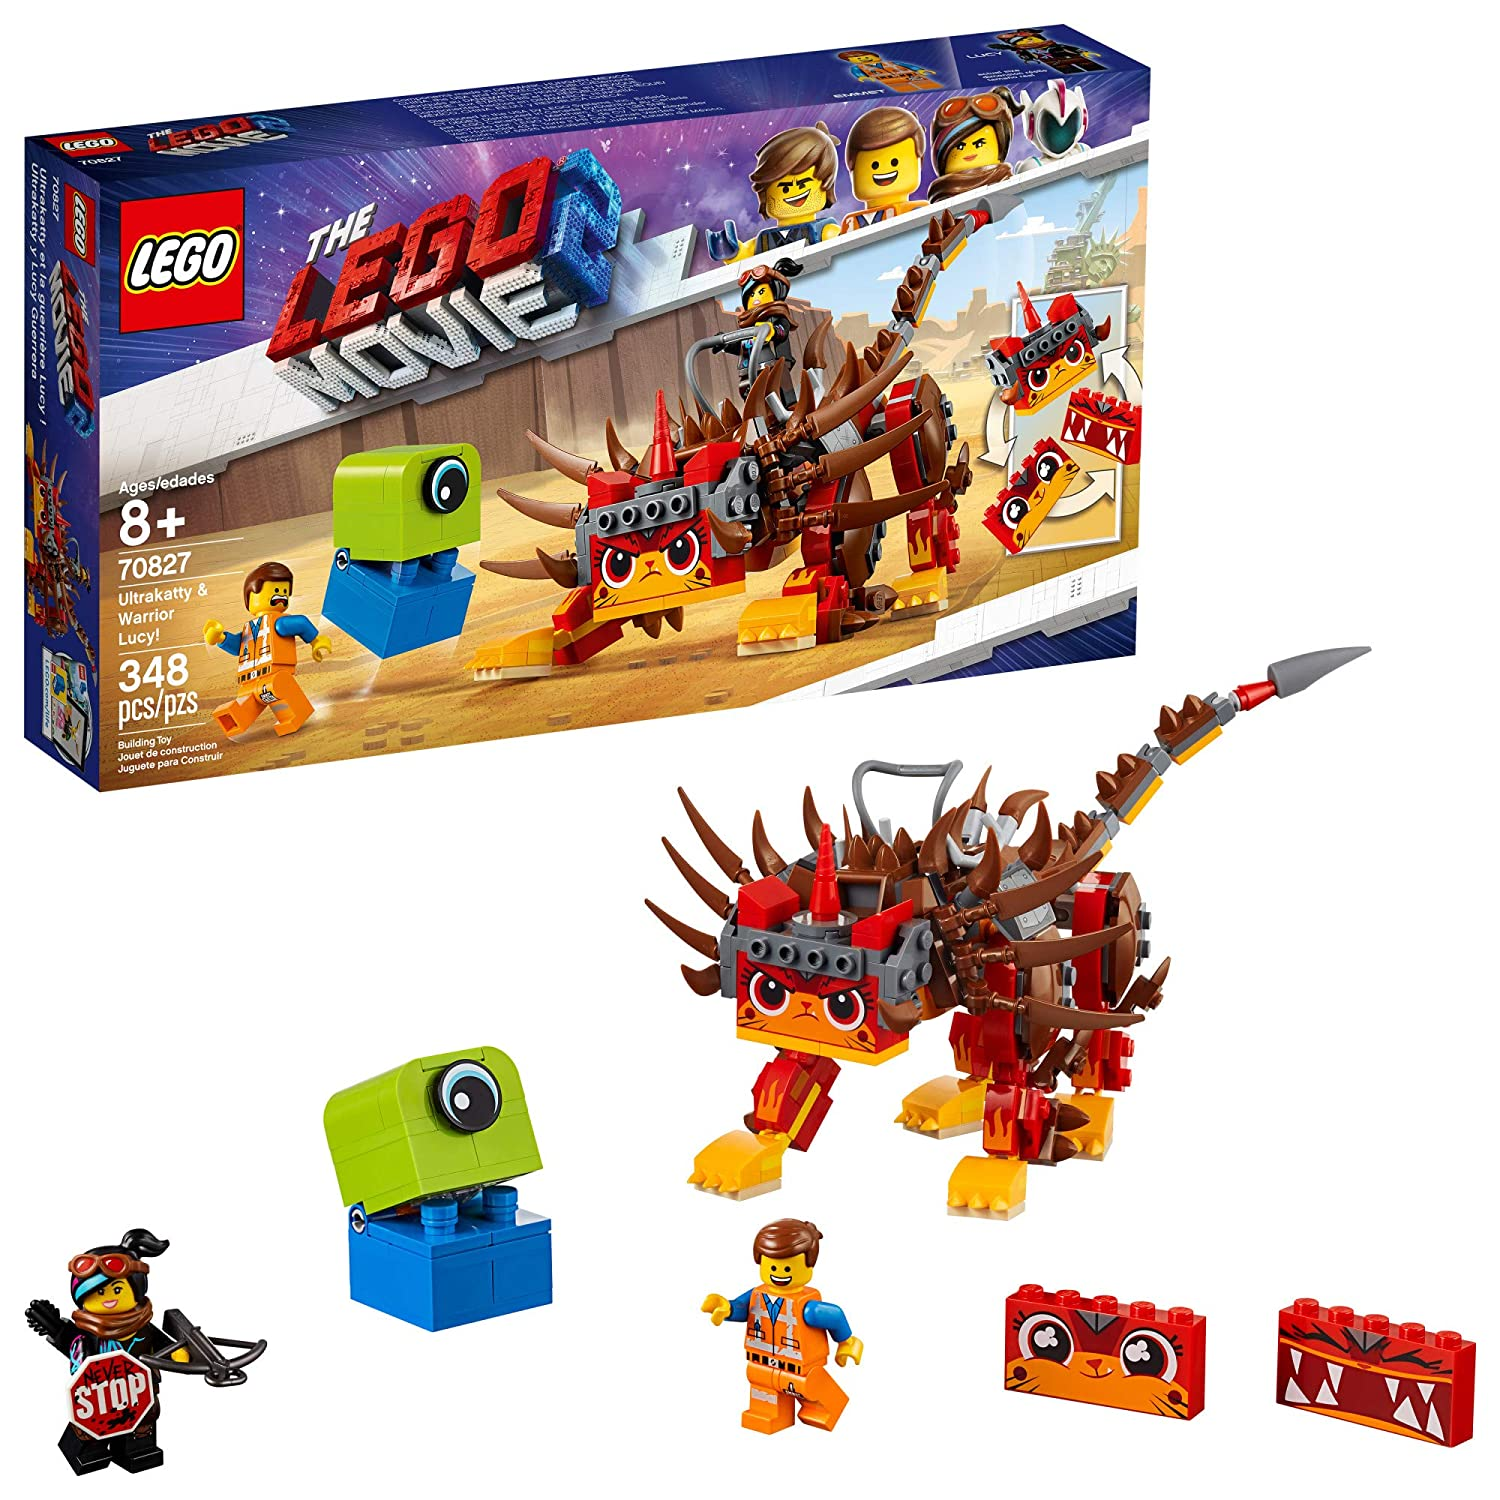 Kit Building Lego Movie Pieces Ultrakattyamp; For Lucy70827 The Warrior Creative Kids348 2 Action dCxBreoW